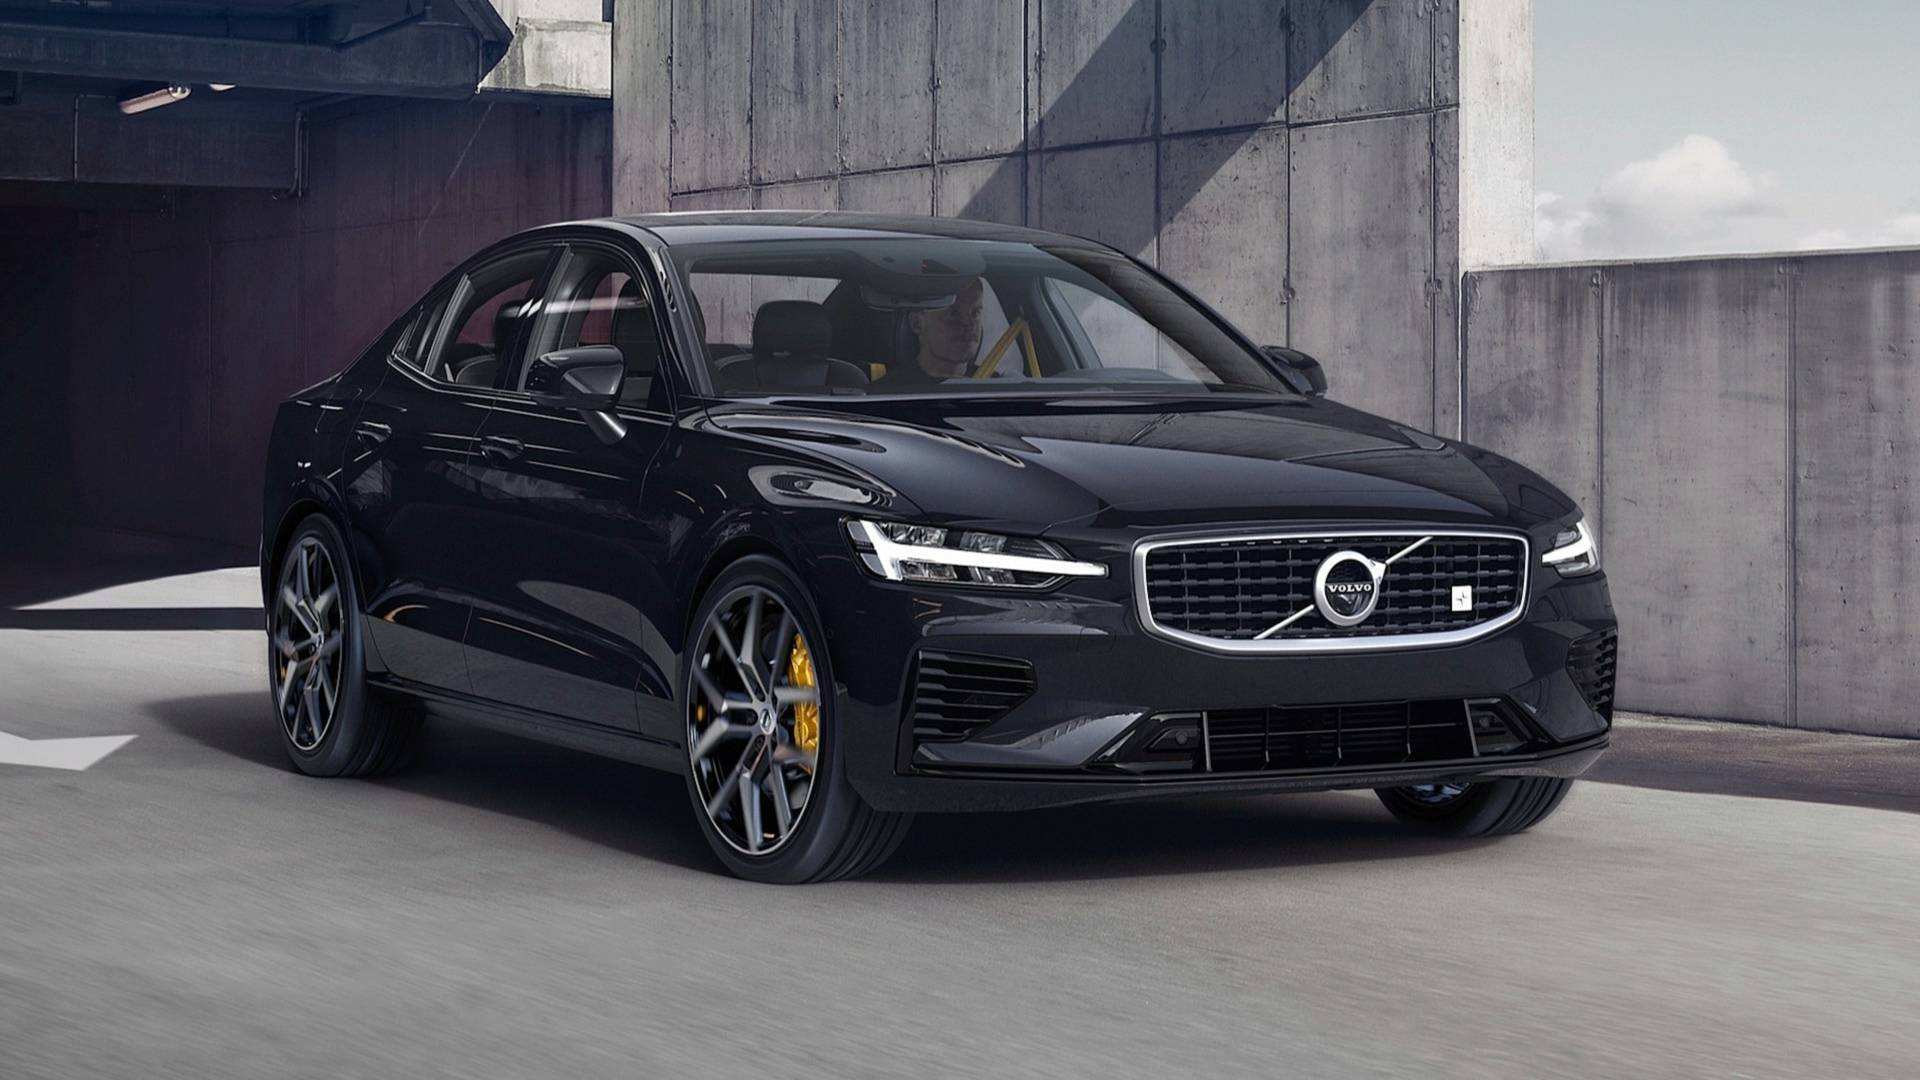 19 Best Volvo S60 Polestar 2020 Speed Test